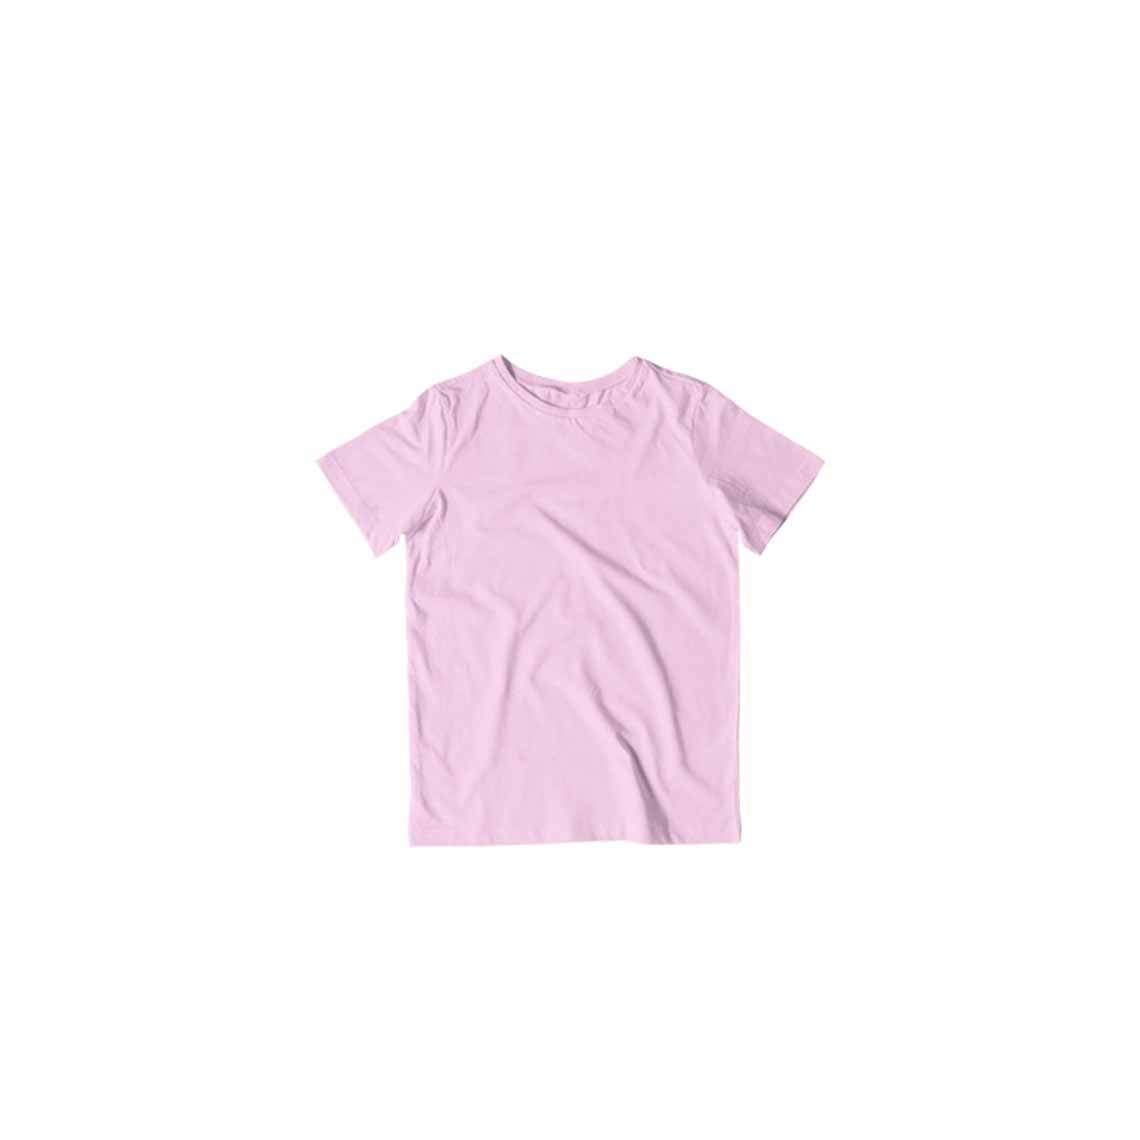 Toddler's Basics - Light Pink Half Sleeves Round Neck T-shirt